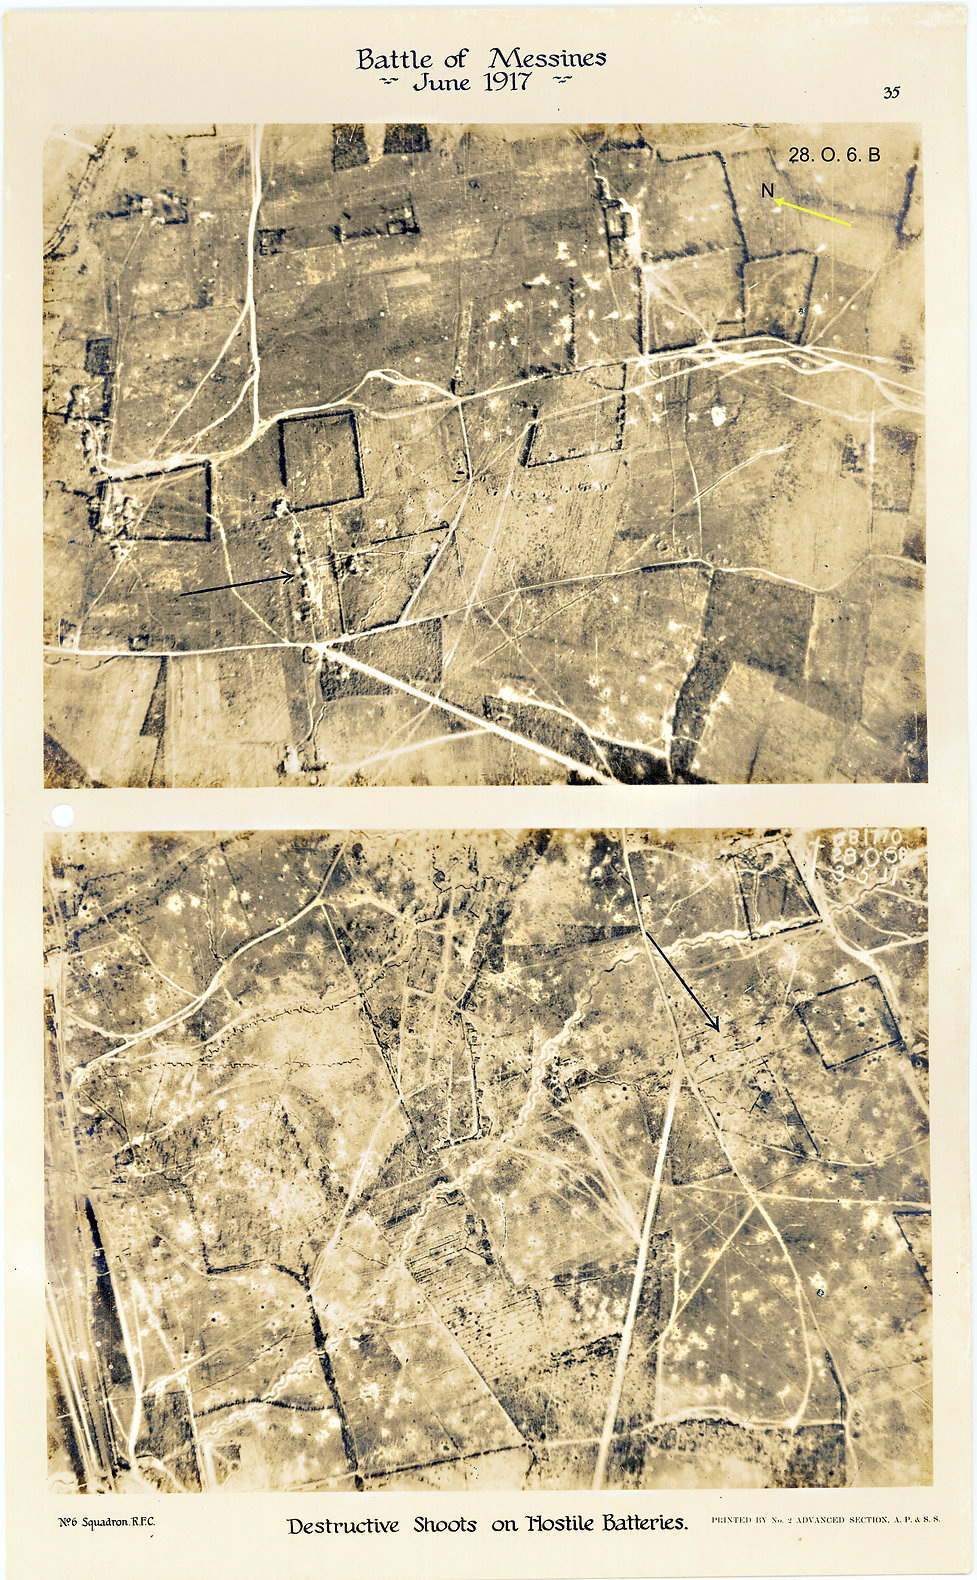 6 Squadron aerial photos of destructive shoot at Klein-Zillebeke, taken by 6 Squadron immediately prior to the Battle of Messines, 1917